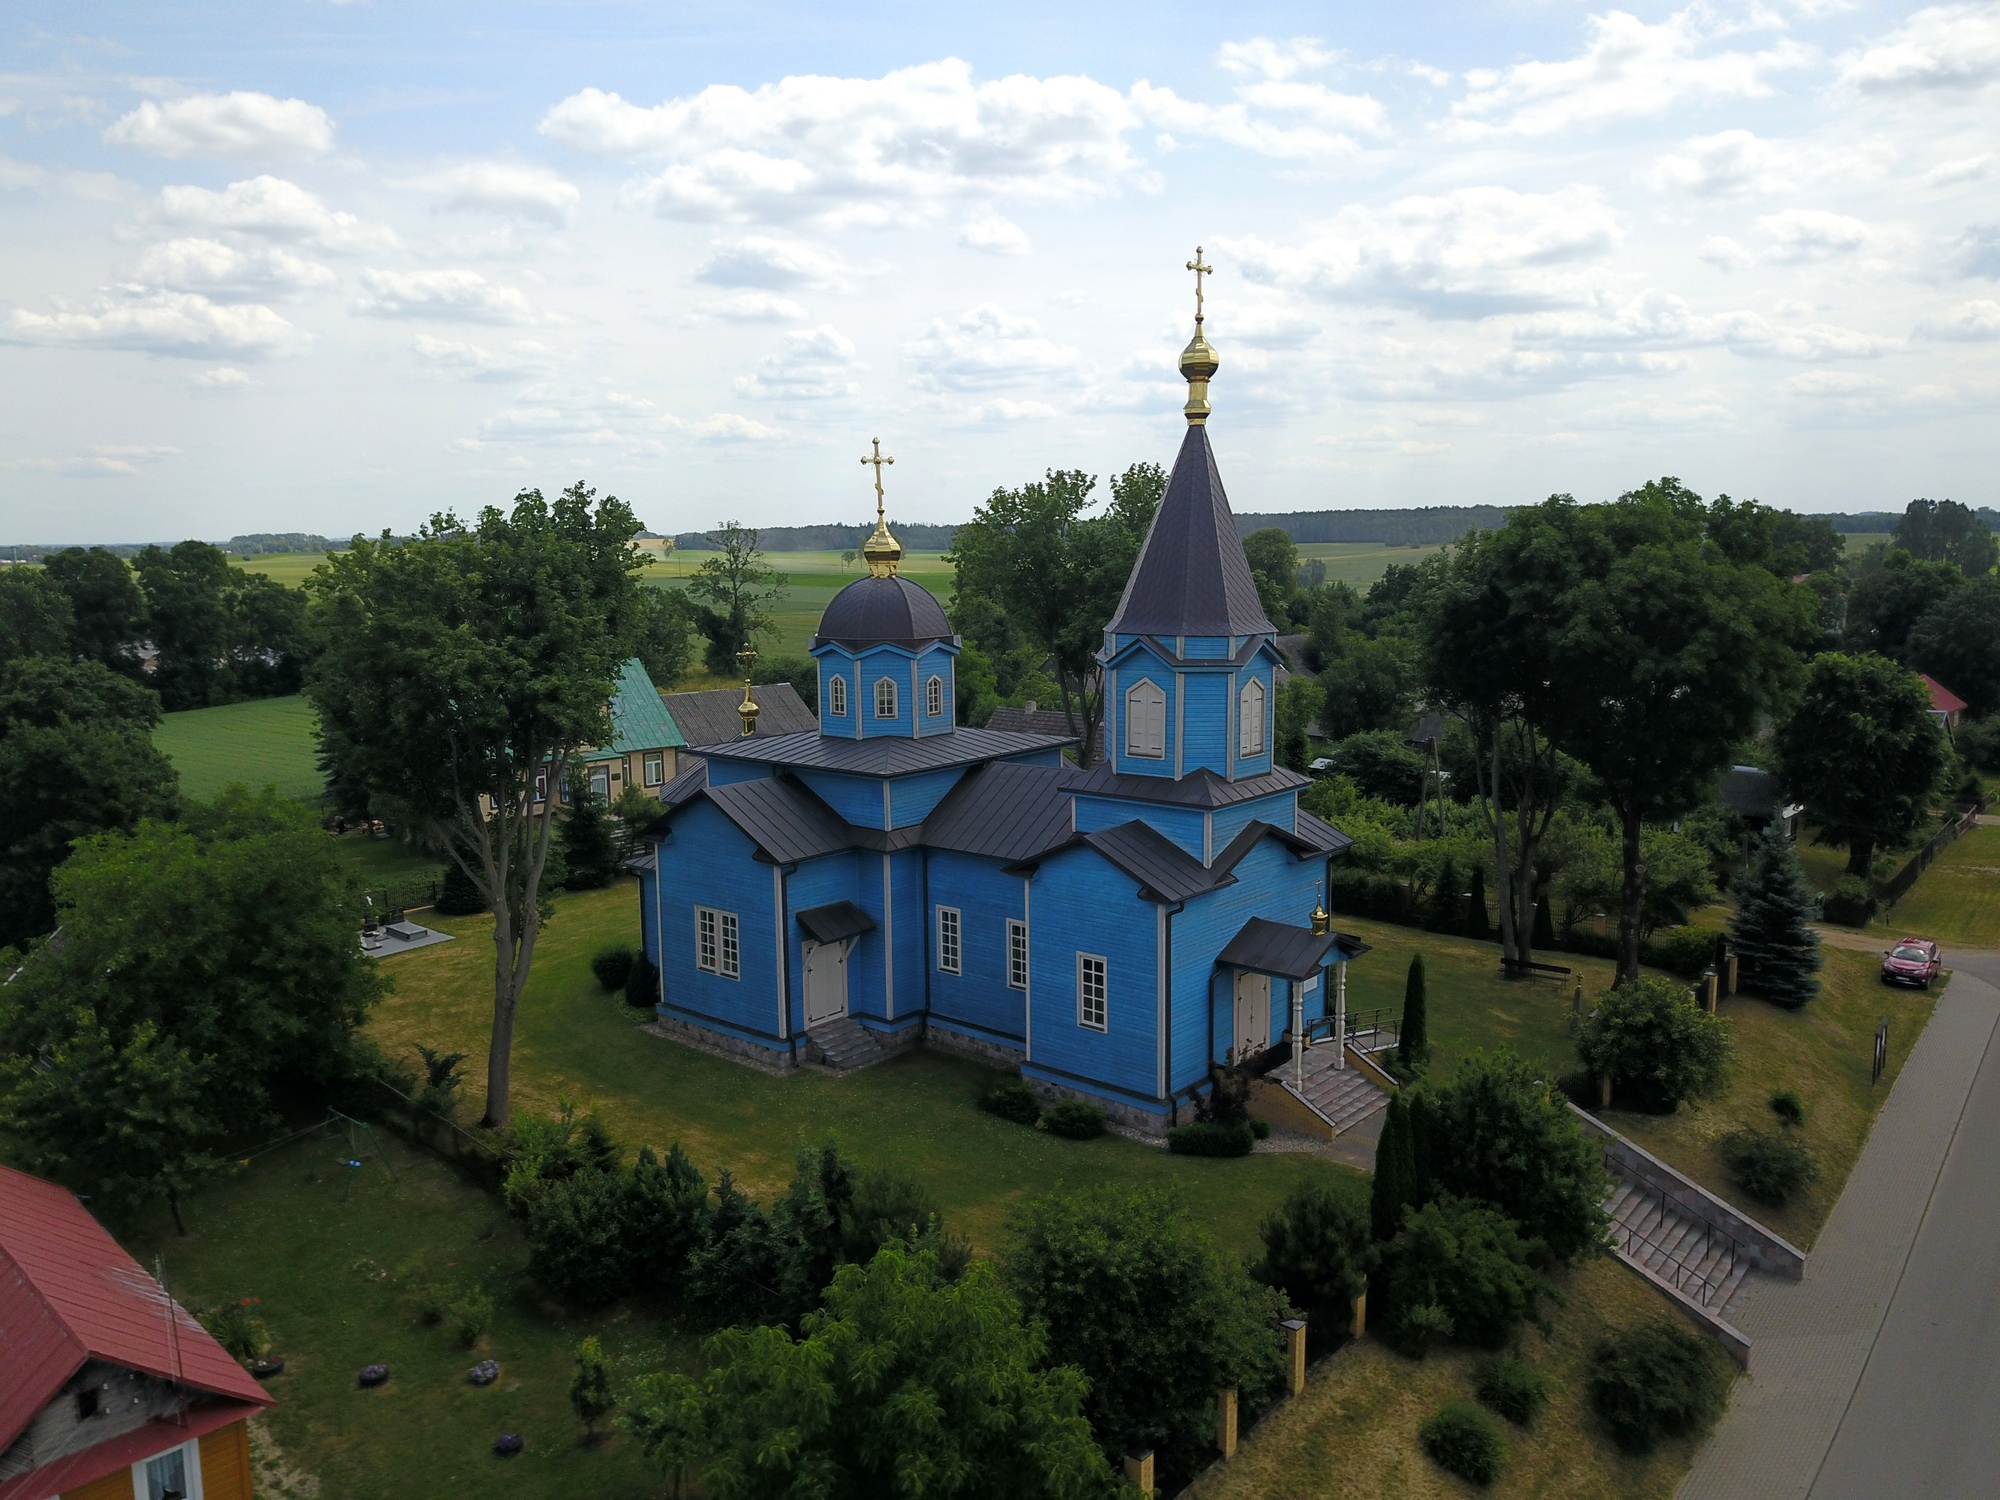 The Orthodox church in Rajsk